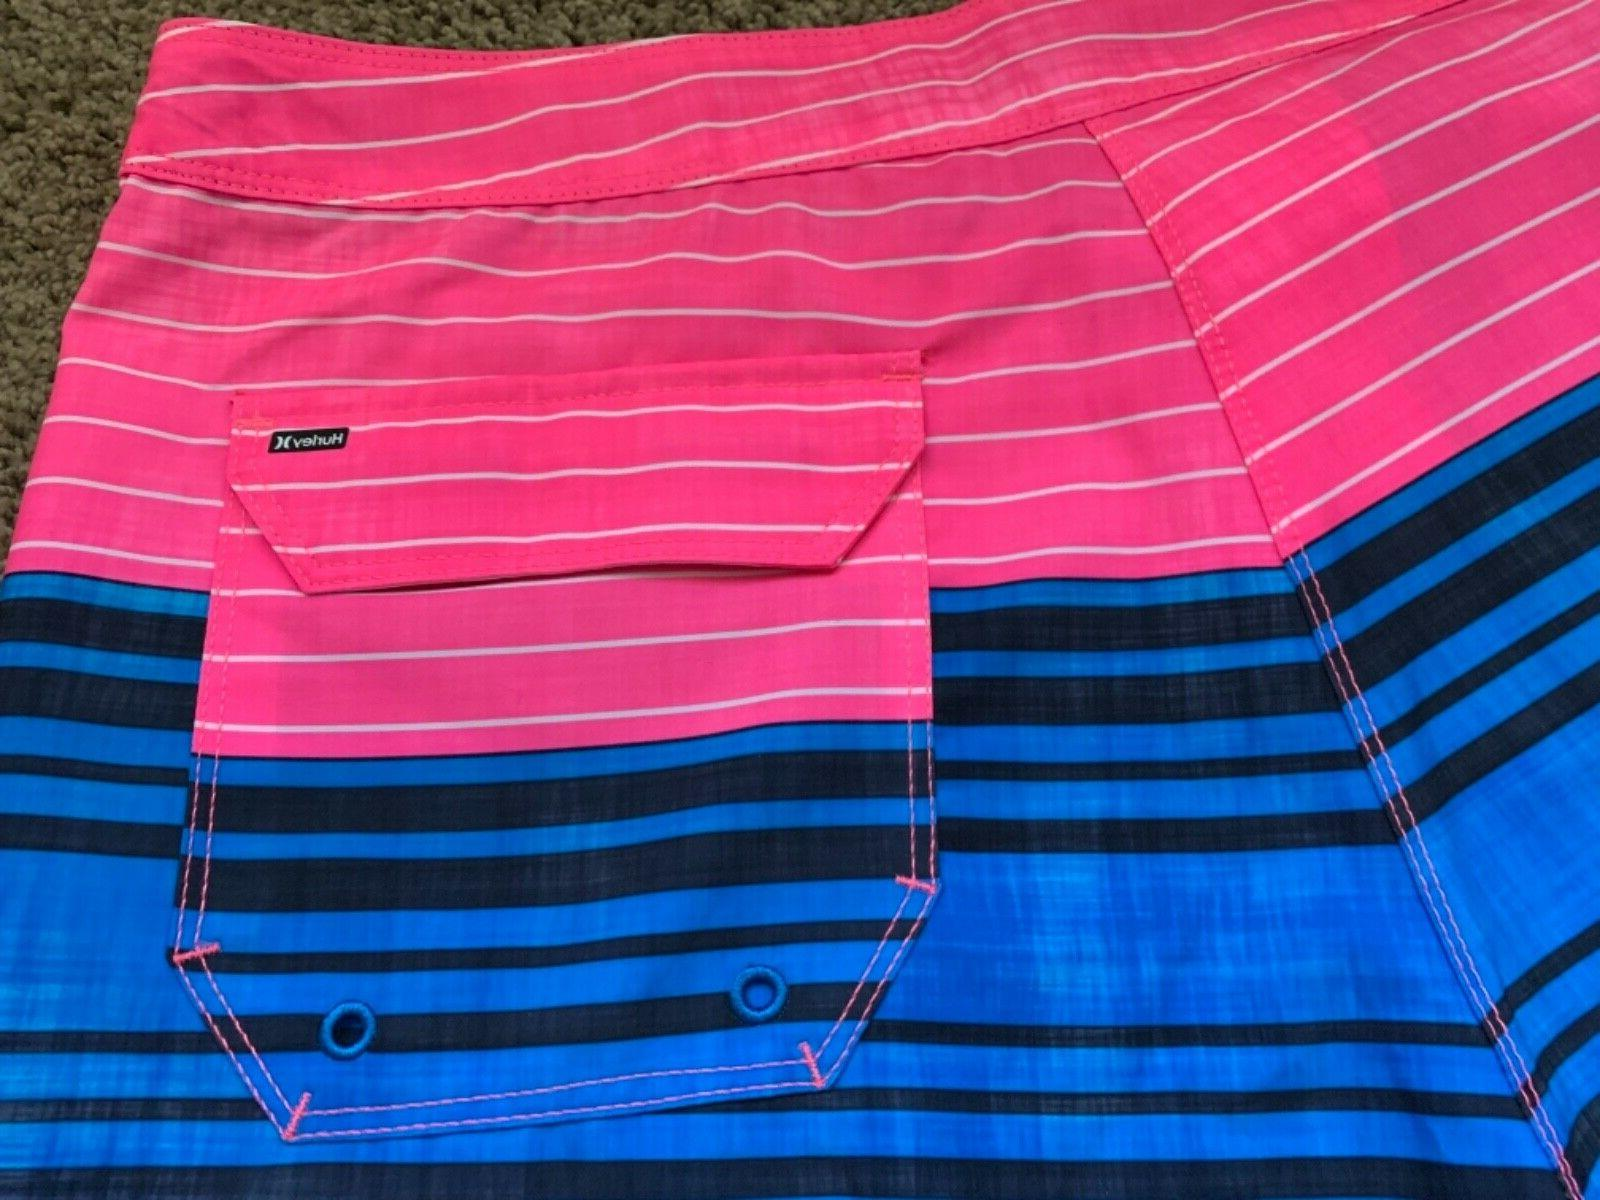 BRAND NEW SS PINK BOARD SHORTS 32 33 34 x